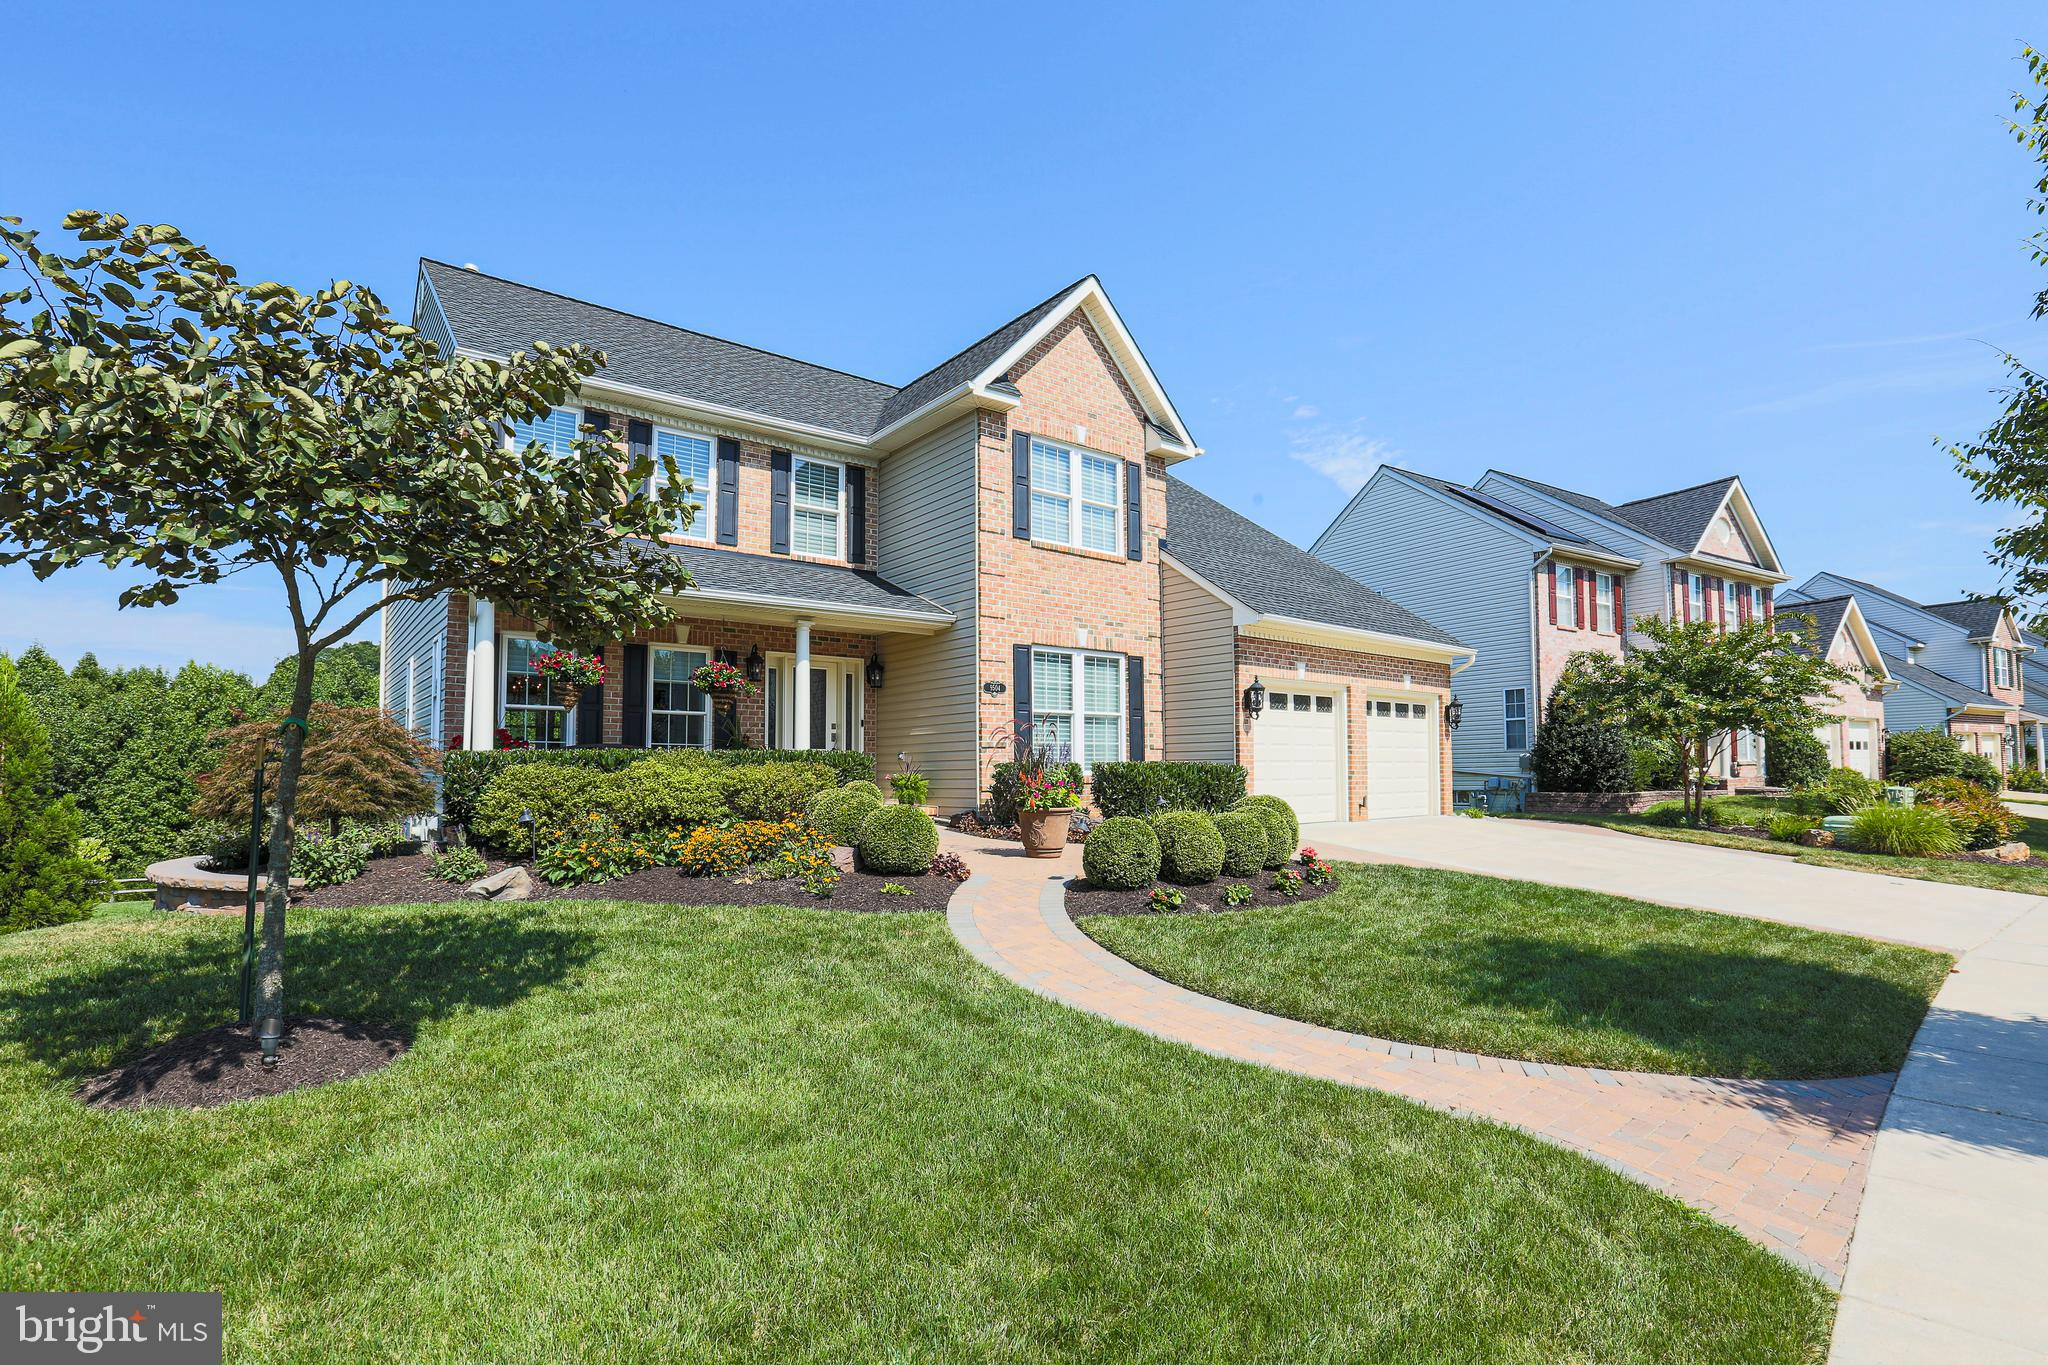 9504 GOOD SPRING DRIVE, PERRY HALL, MD 21128